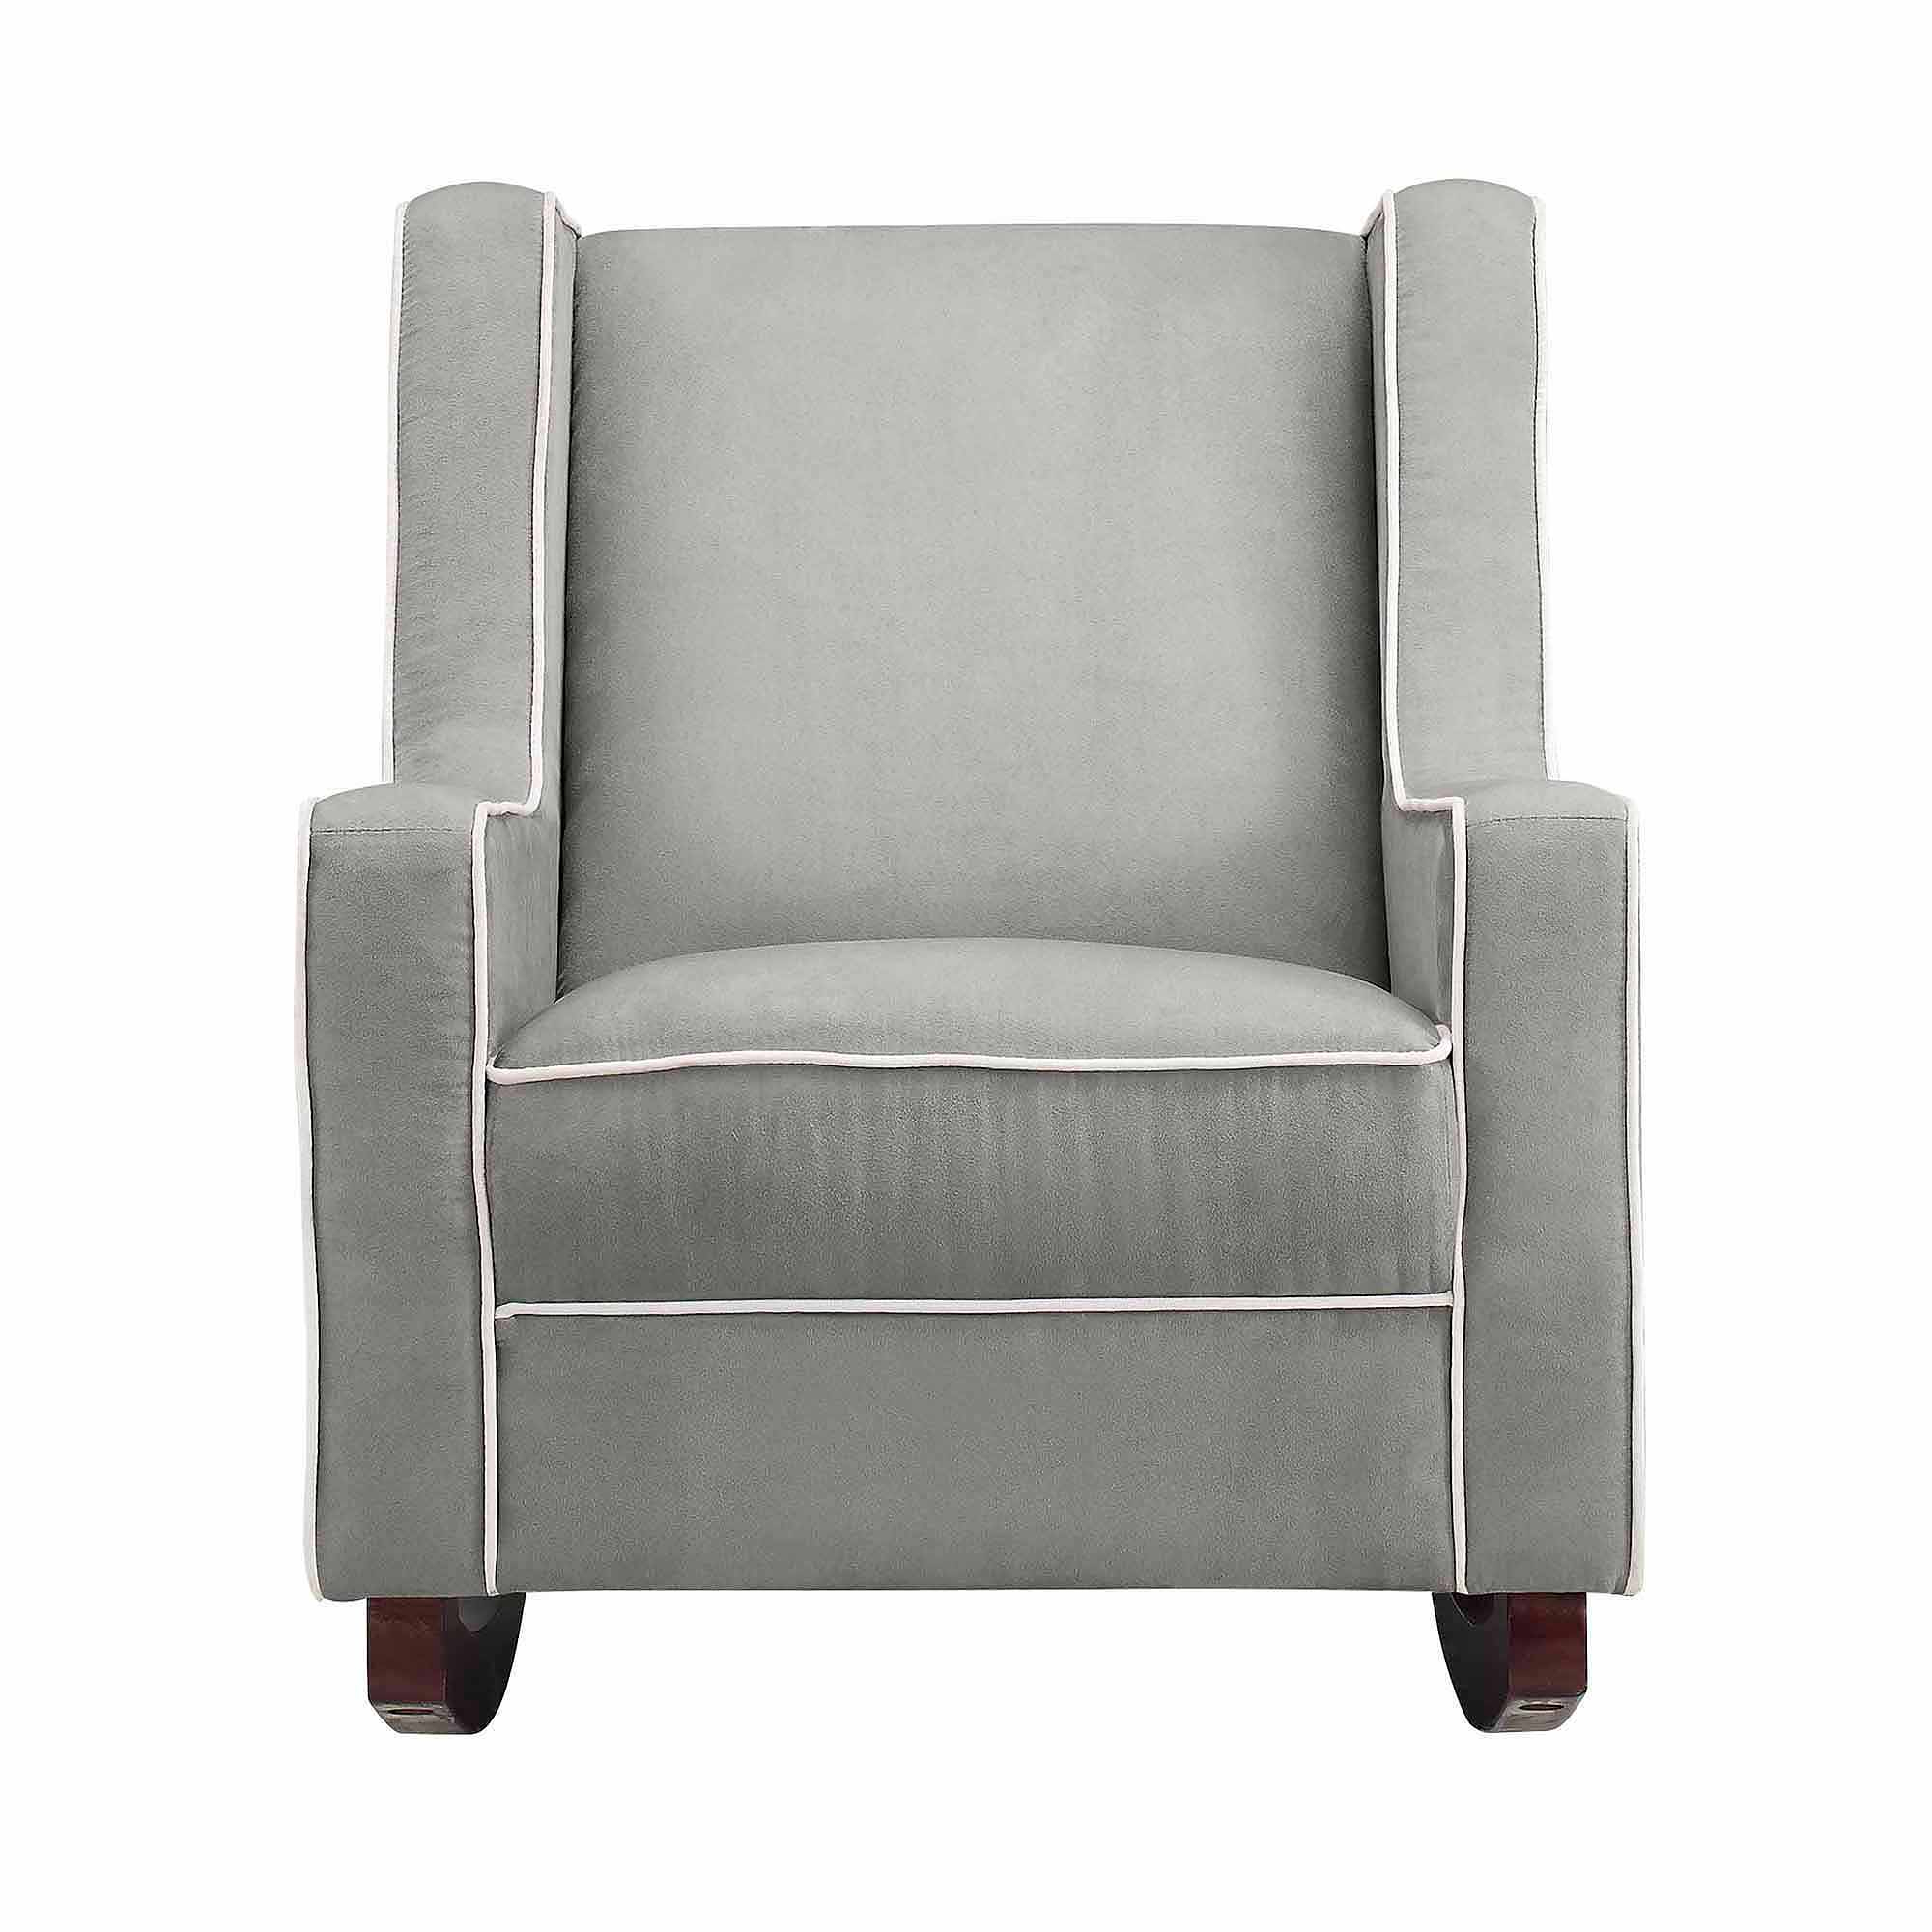 Abbey Swivel Glider Recliners Intended For Fashionable Furniture: Magnificent Walmart Glider Rocker For Fabulous Home (Gallery 3 of 20)